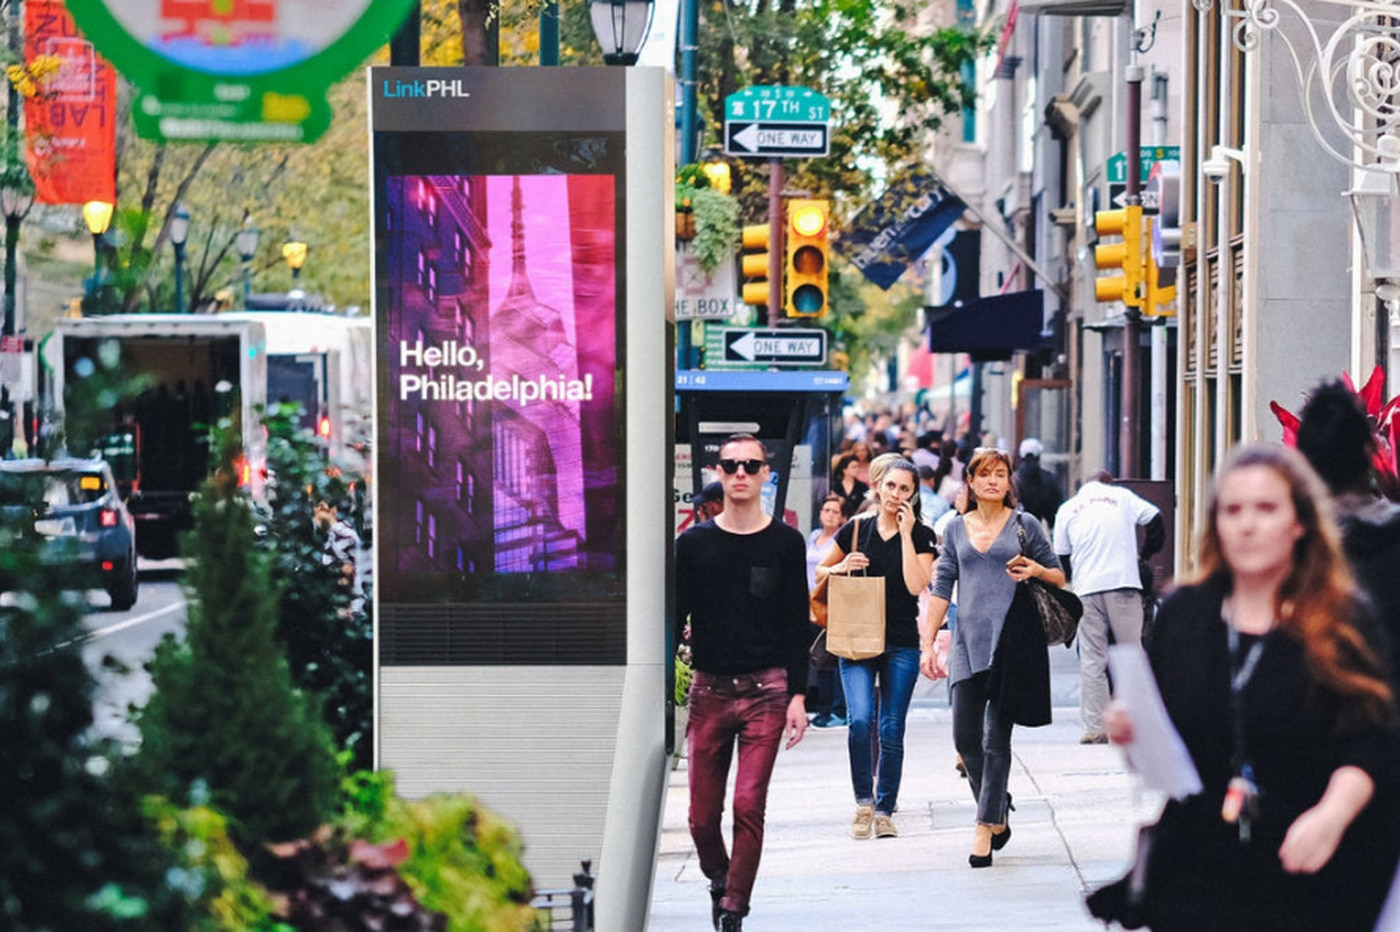 Free WiFi kiosks in NYC coming to Philly with cameras, critics and lessons learned